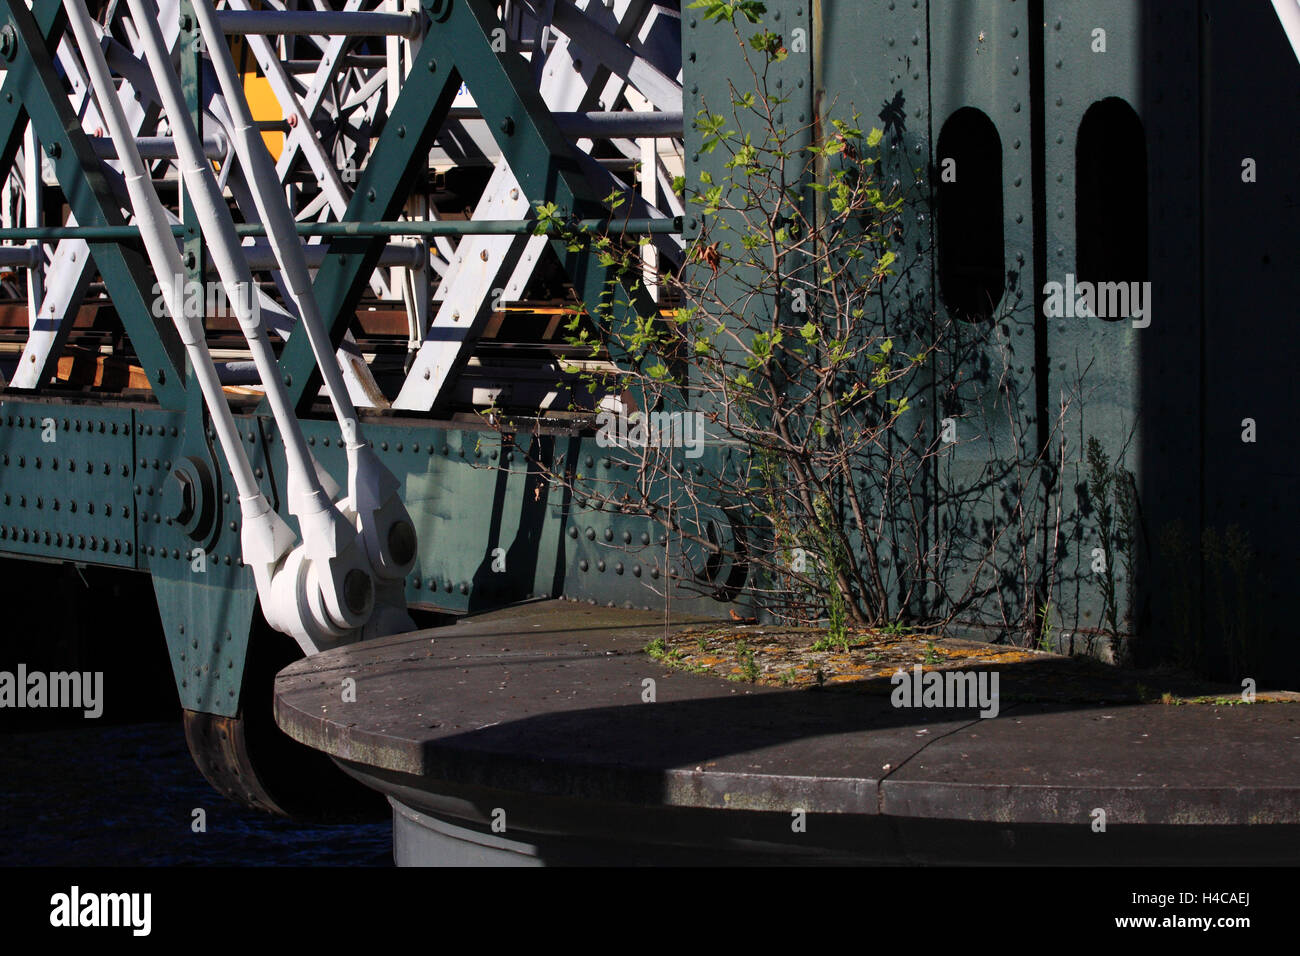 A shrub grows out of the structure of The Golden Jubilee Bridge, which spans the River Thames in London, England Stock Photo